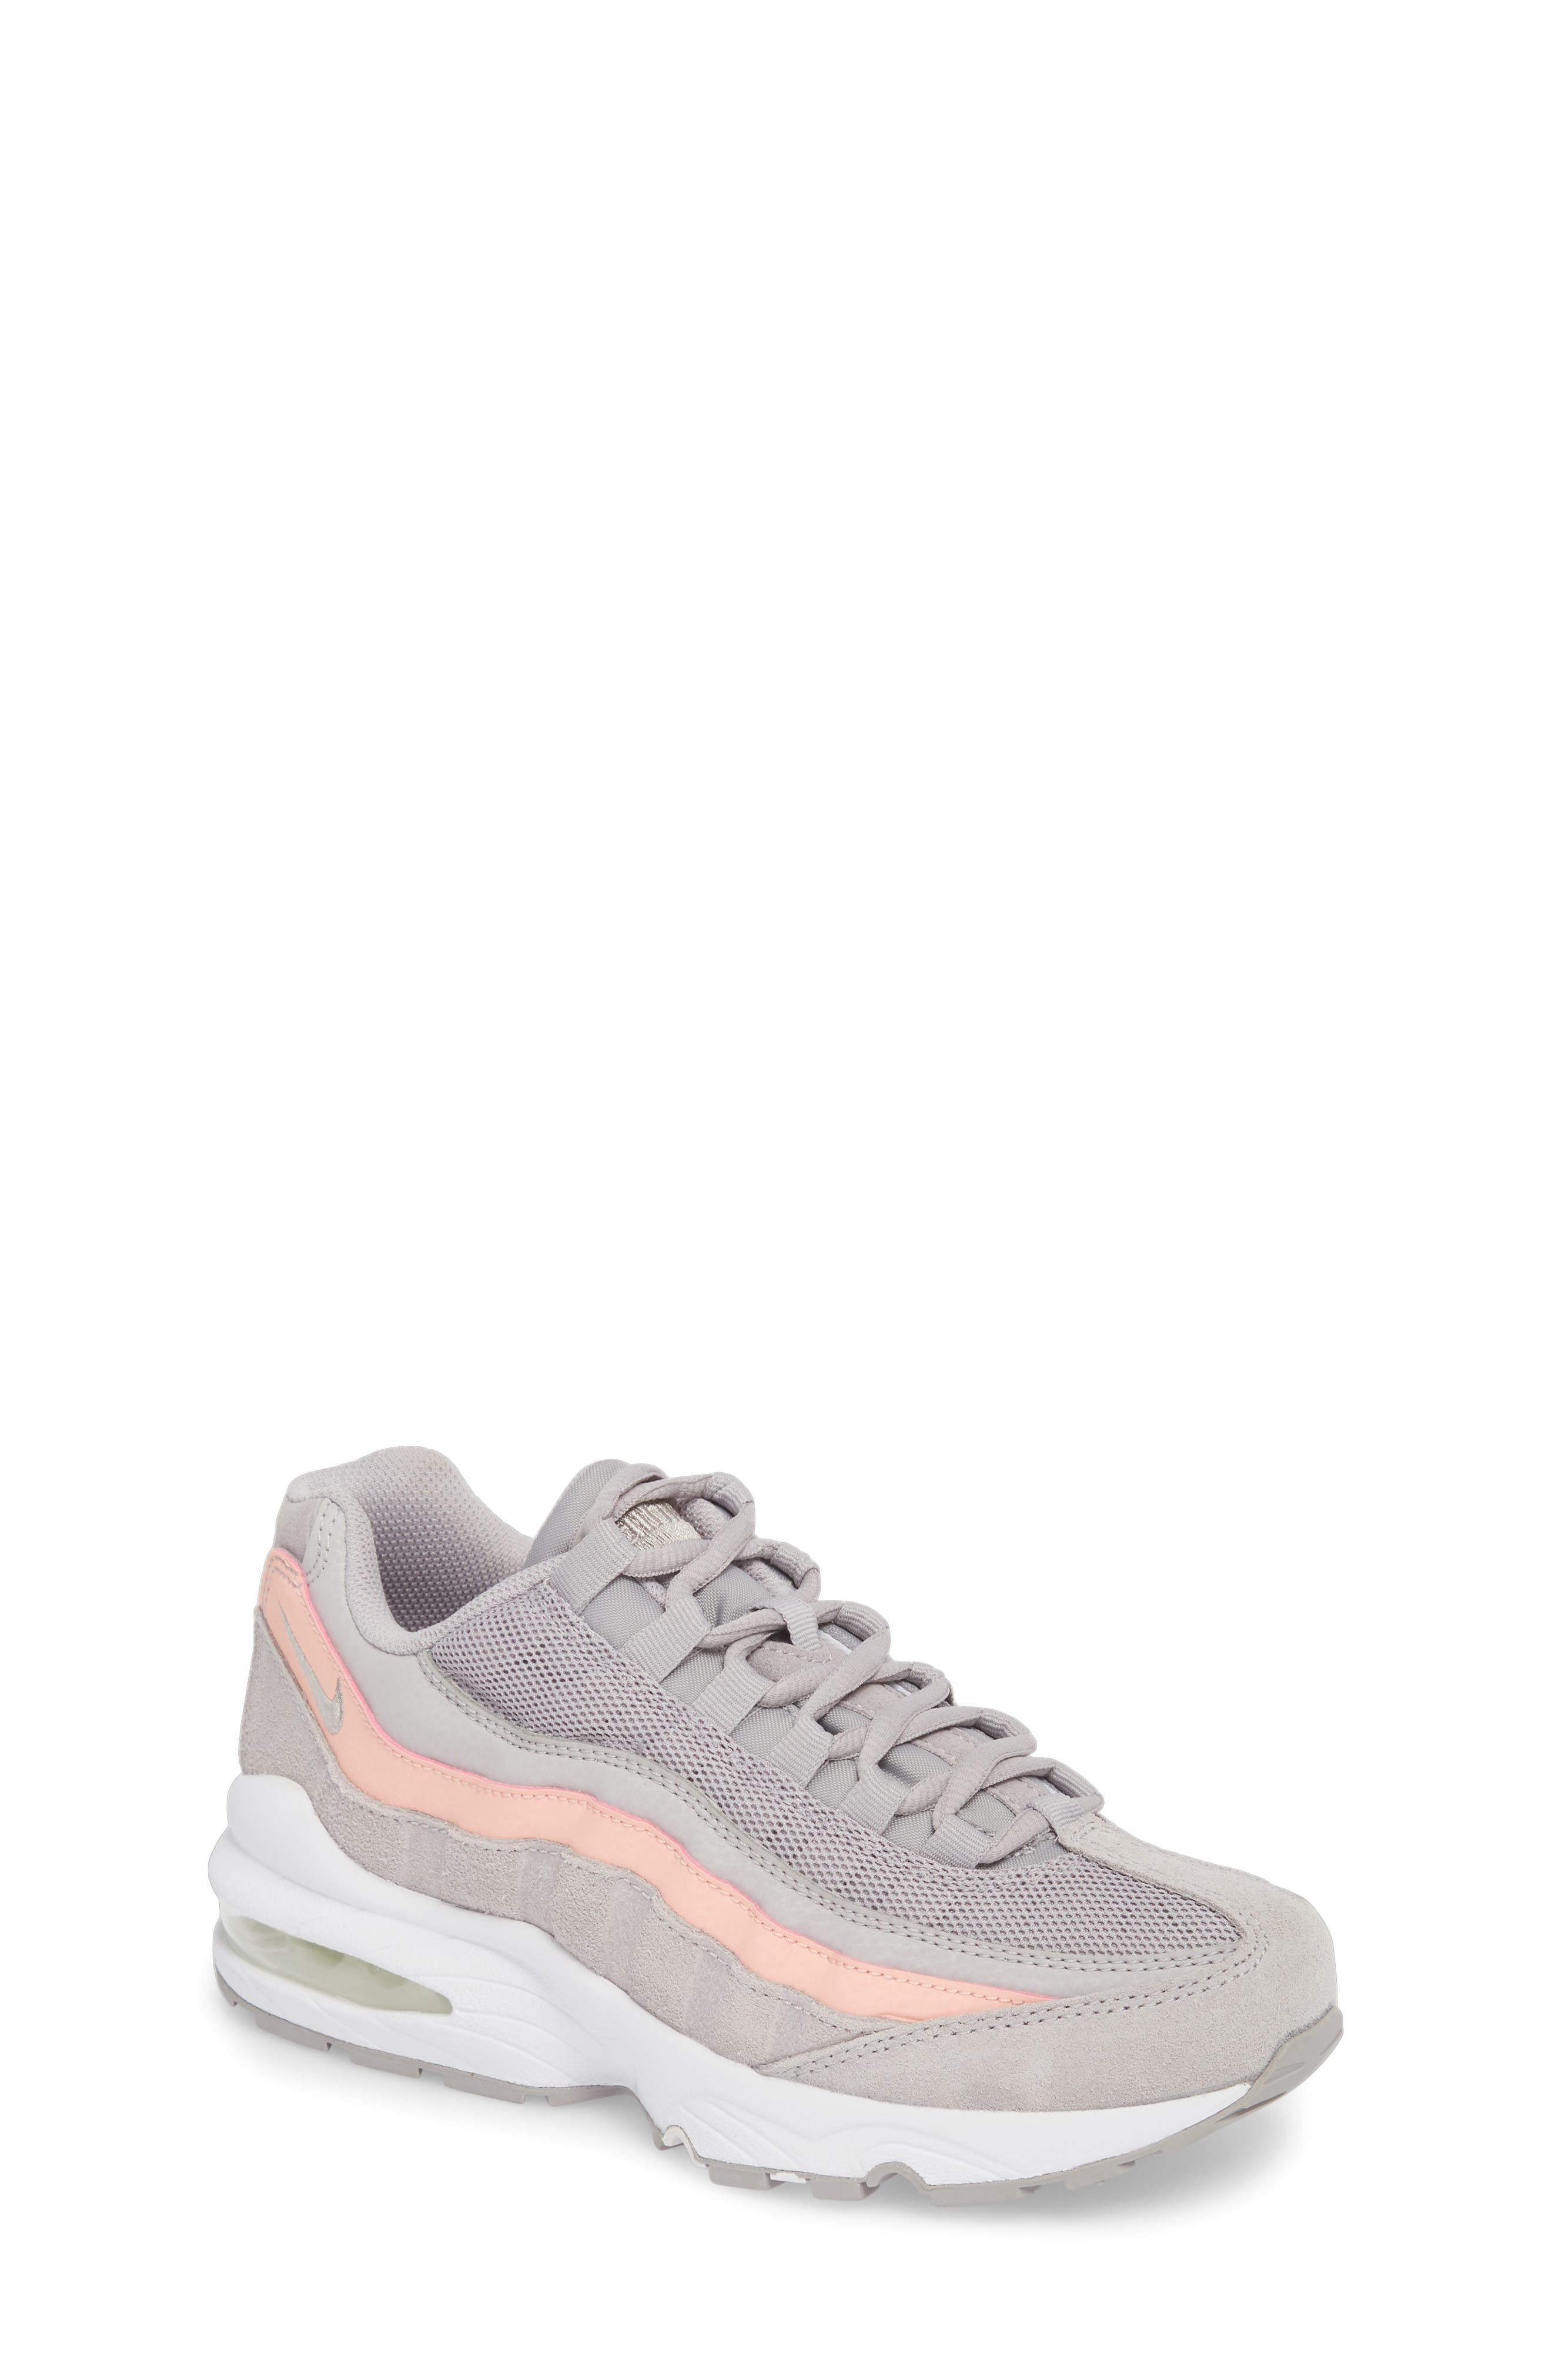 Air Max '95 LE Sneaker,                         Main,                         color, Atmosphere Grey